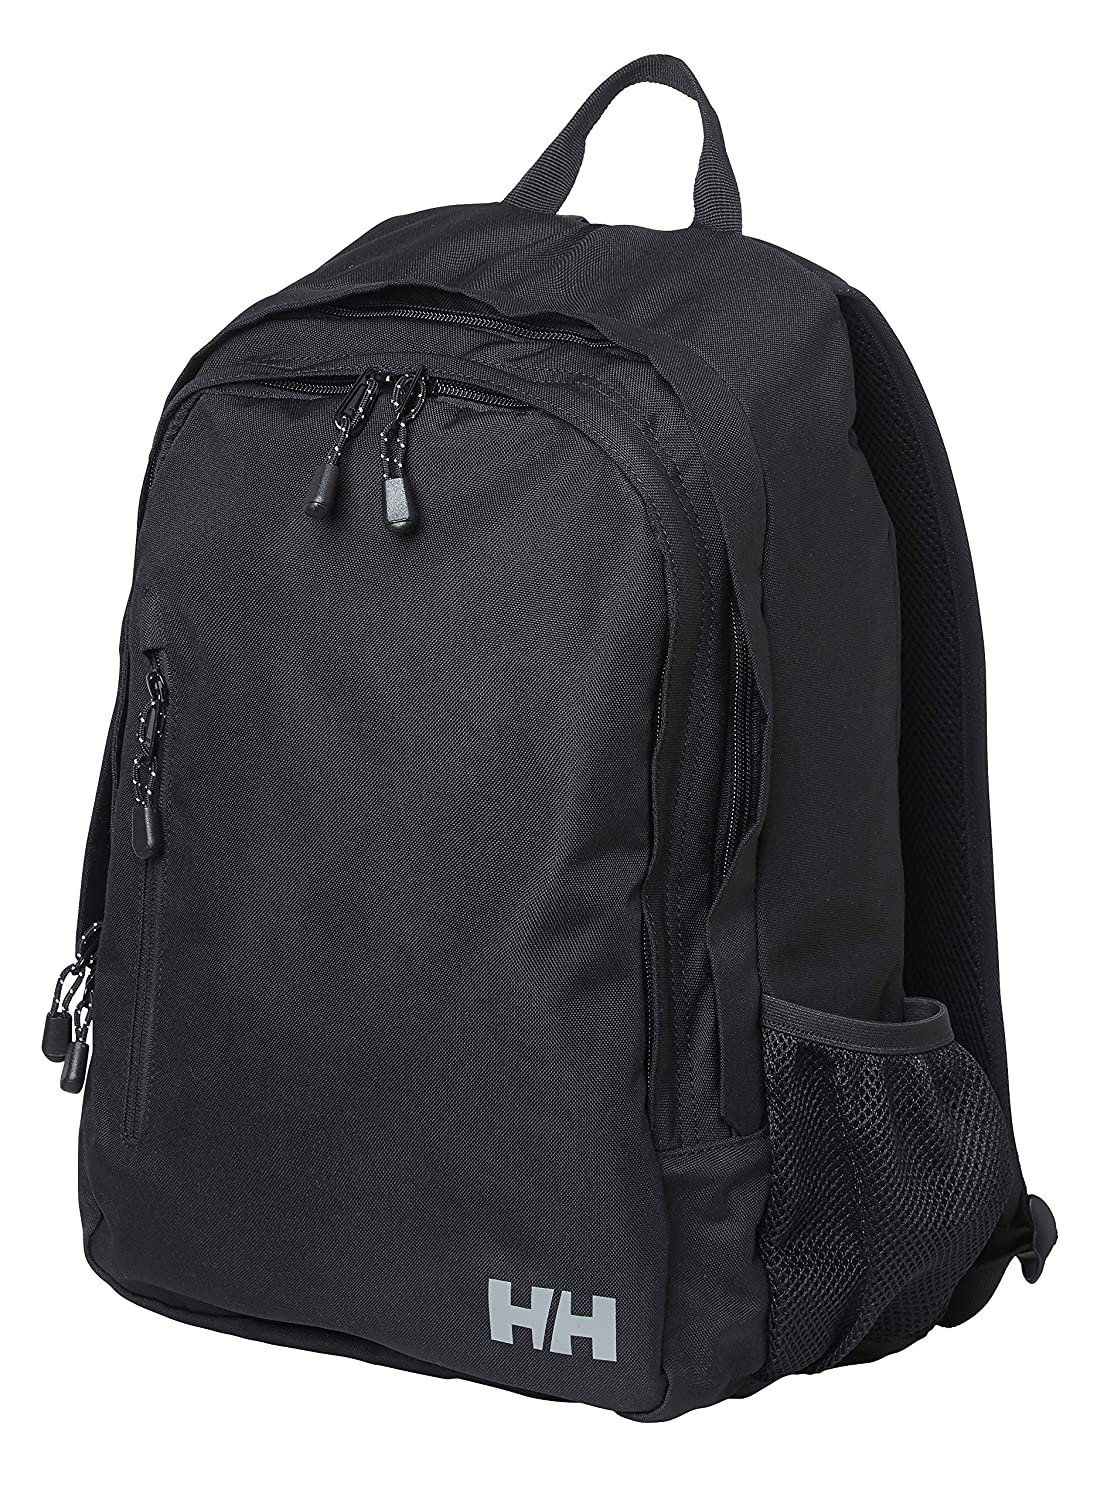 Black One Size Helly Hansen Dublin 2.0 Backpack